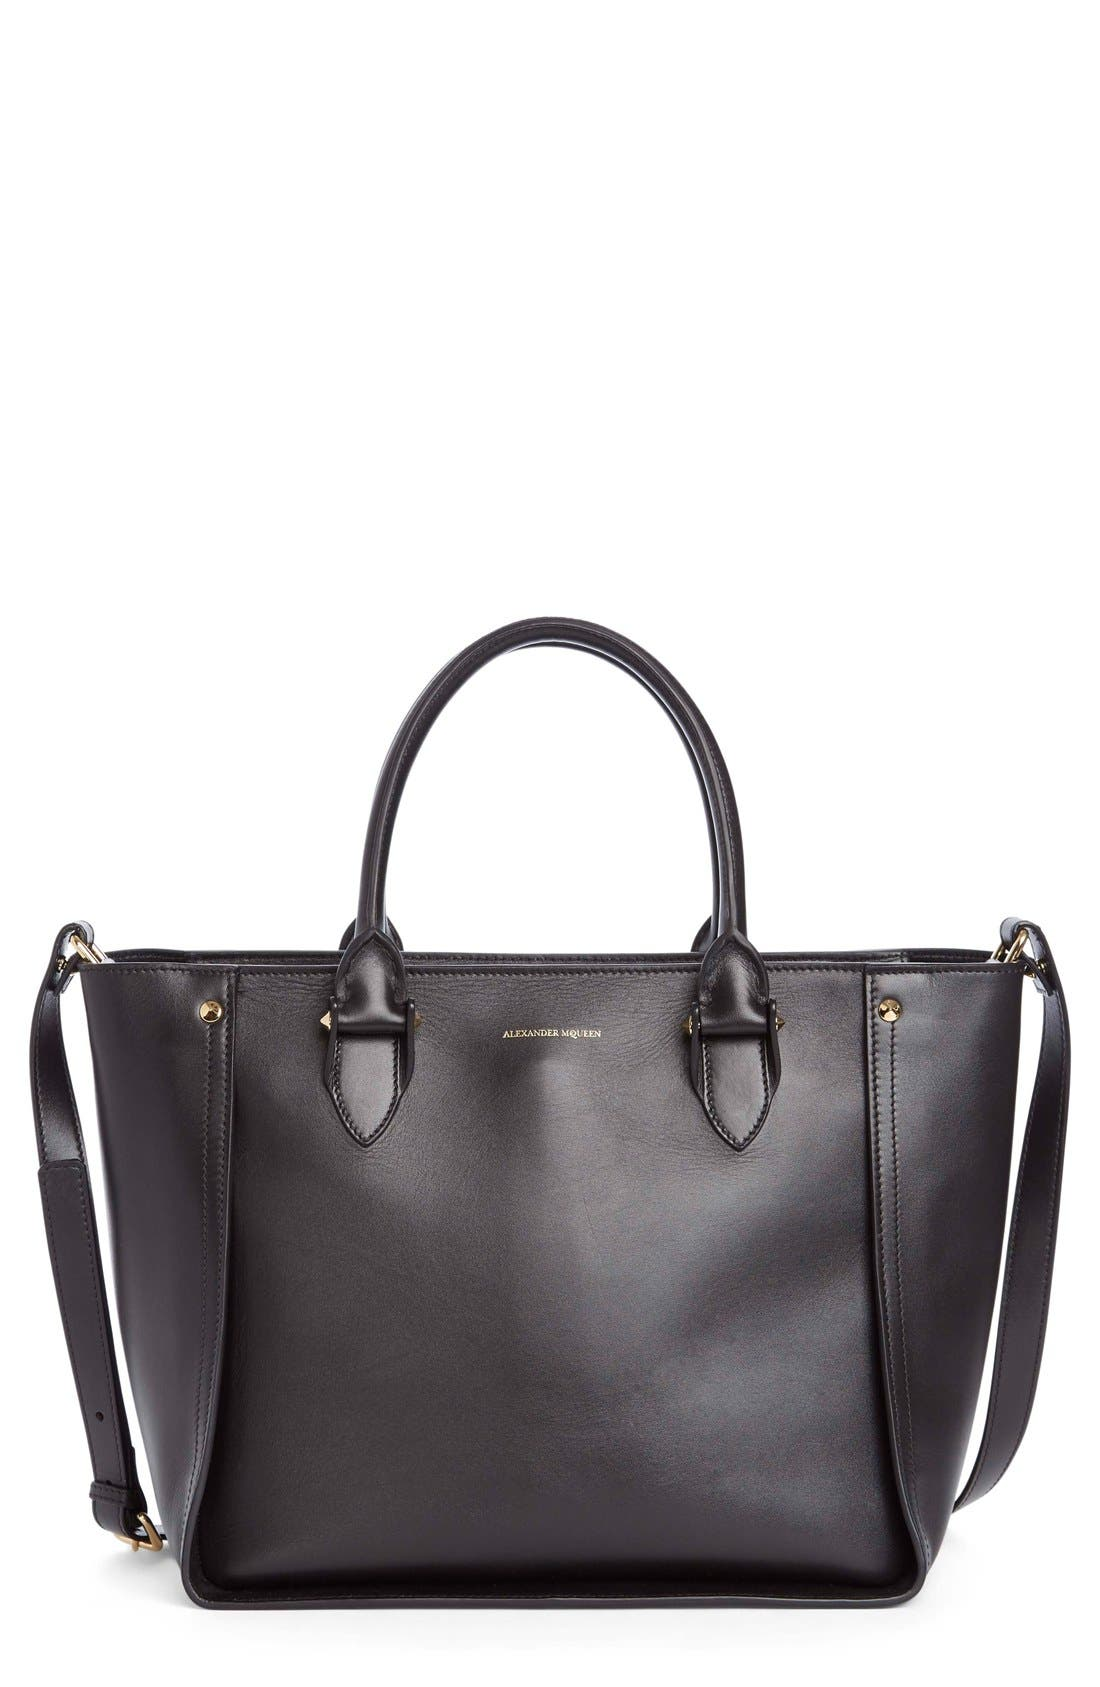 Alexander McQueen 'Inside Out' Leather Shopper